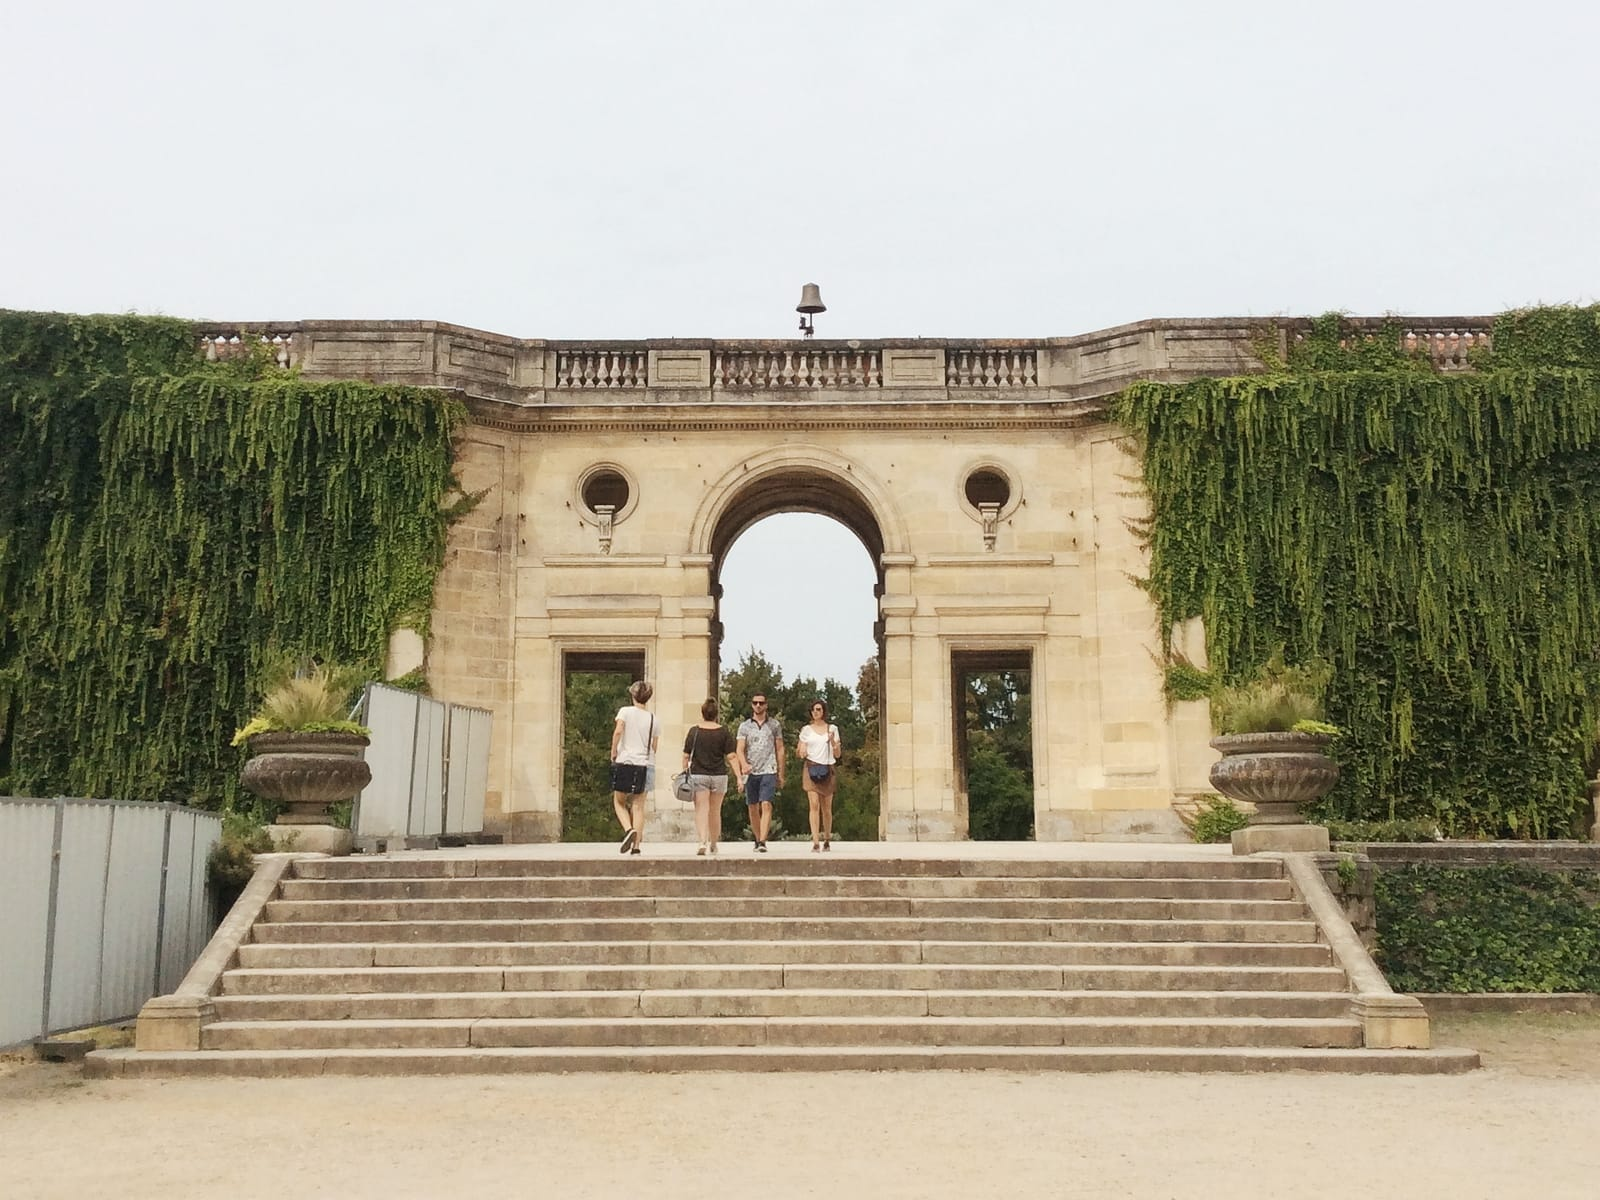 ivy-covered archways in jardin public in Bordeaux, France